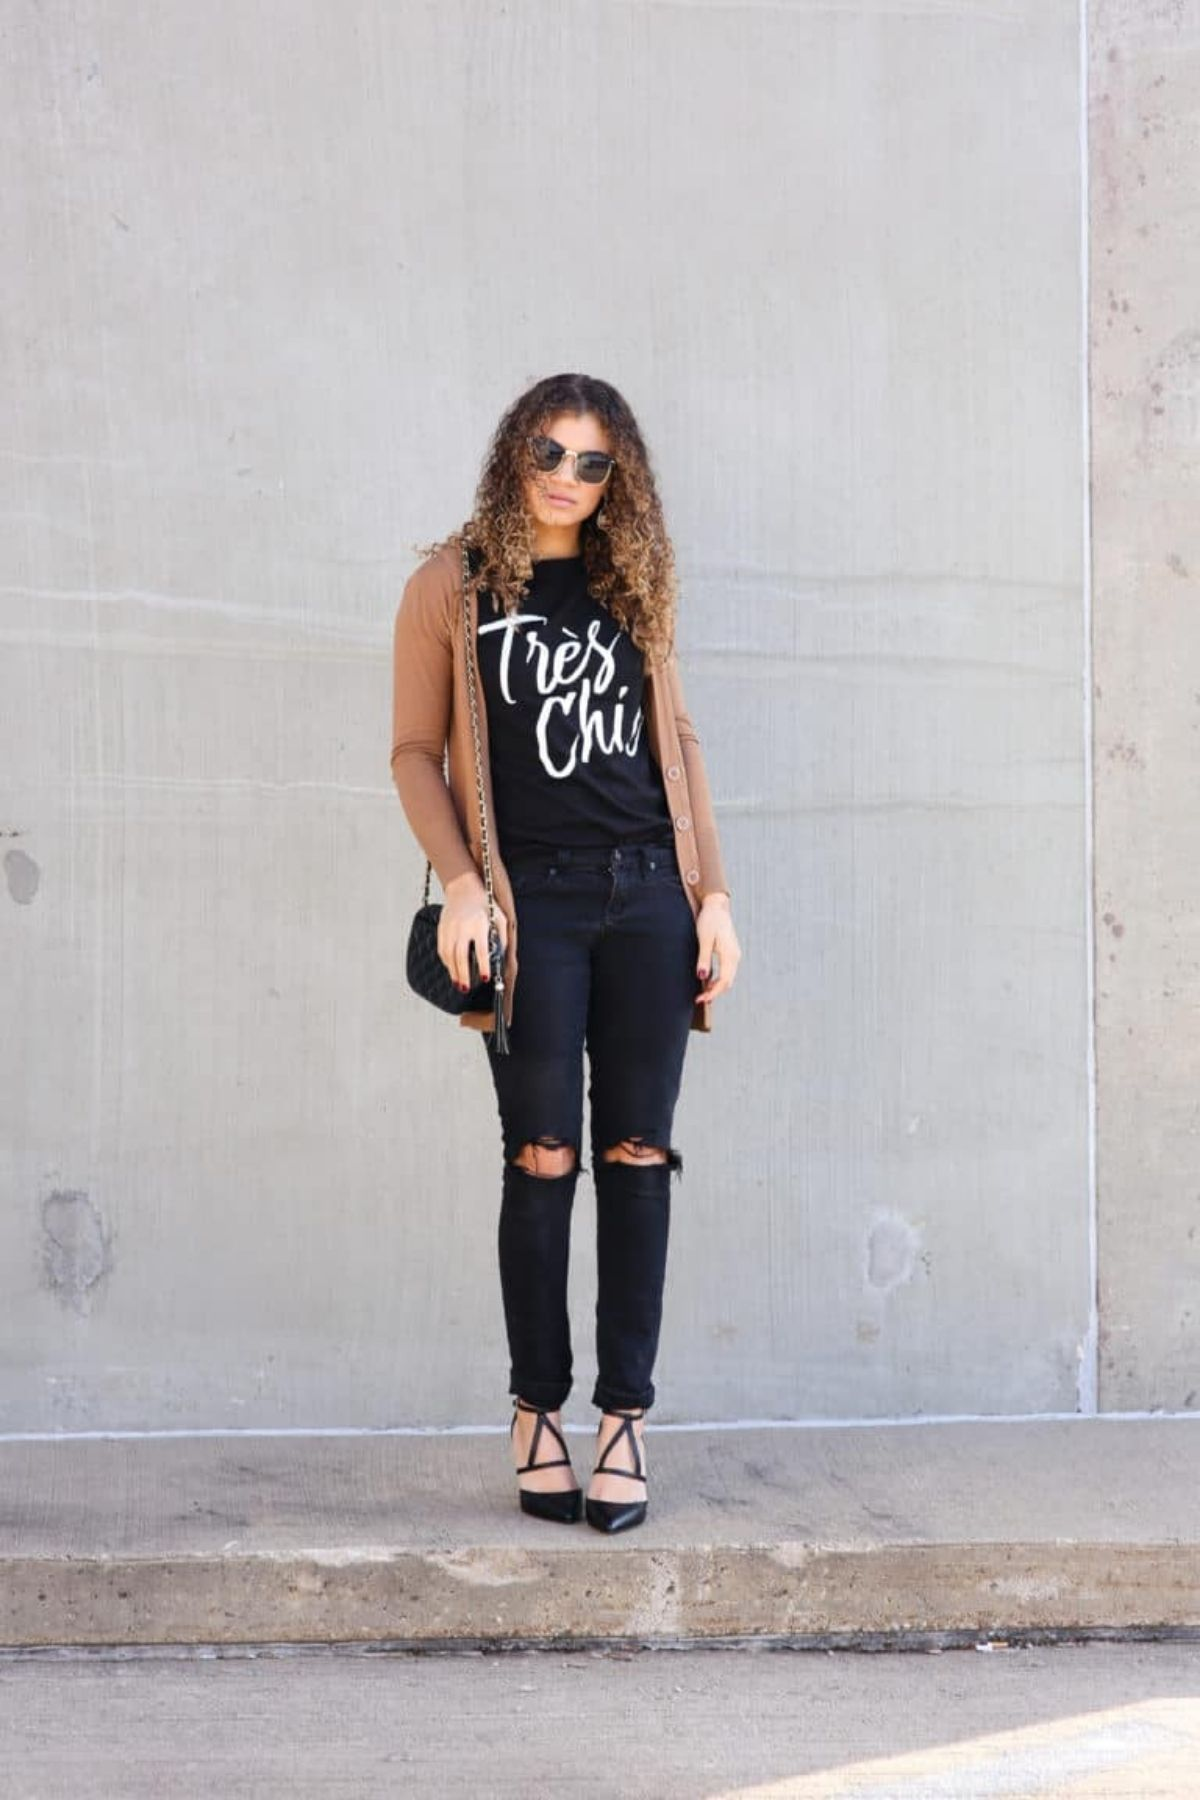 wear graphic tee with black jeans